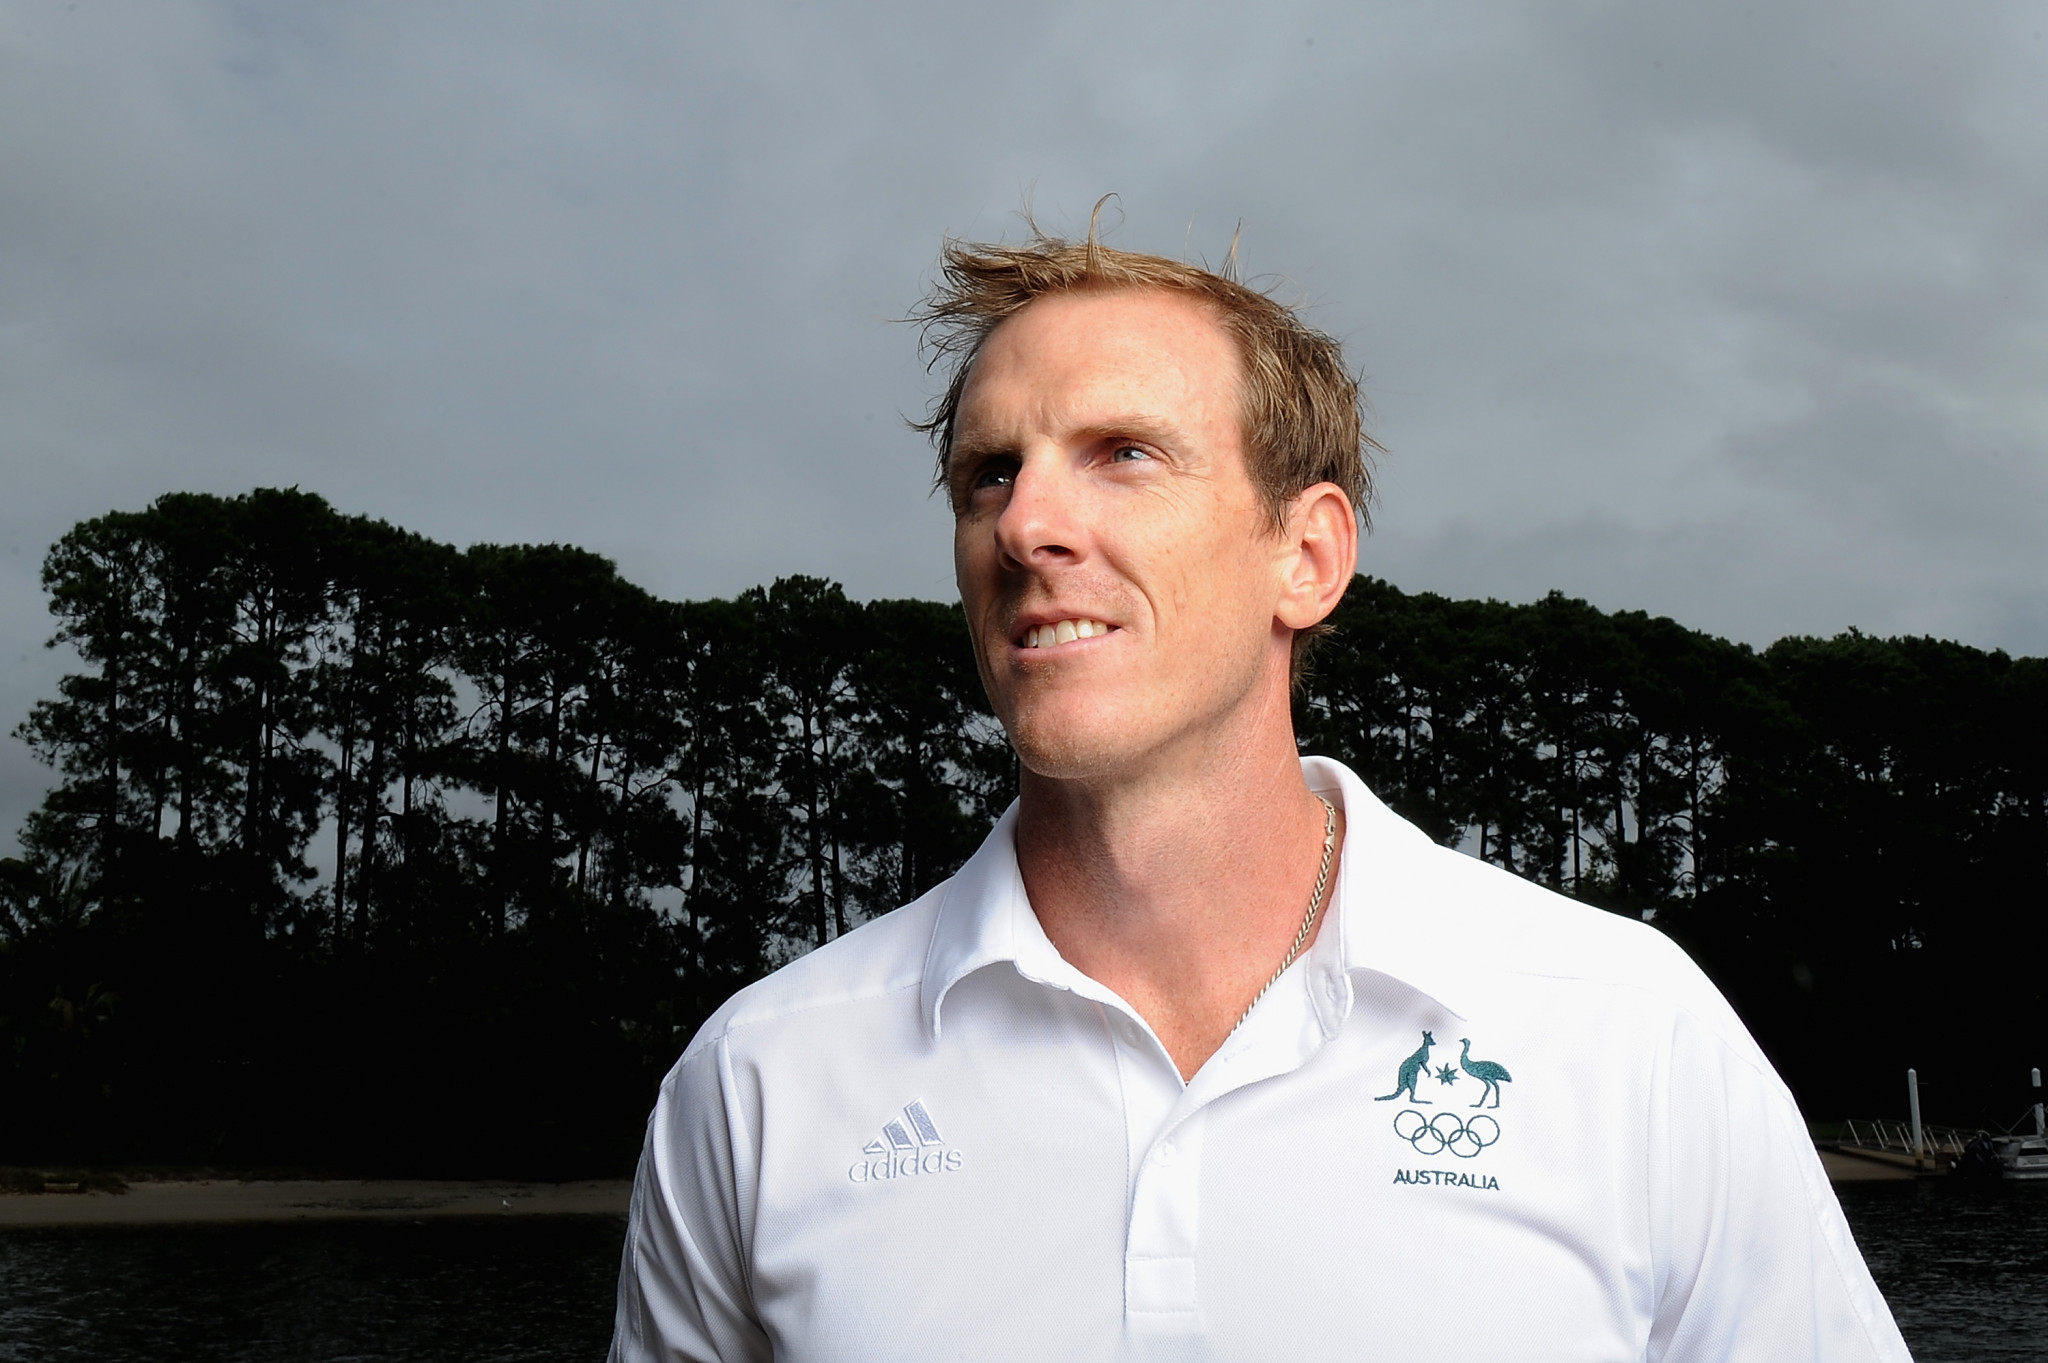 Olympic gold medallist appointed as Australian Chef de Mission for Samoa 2019